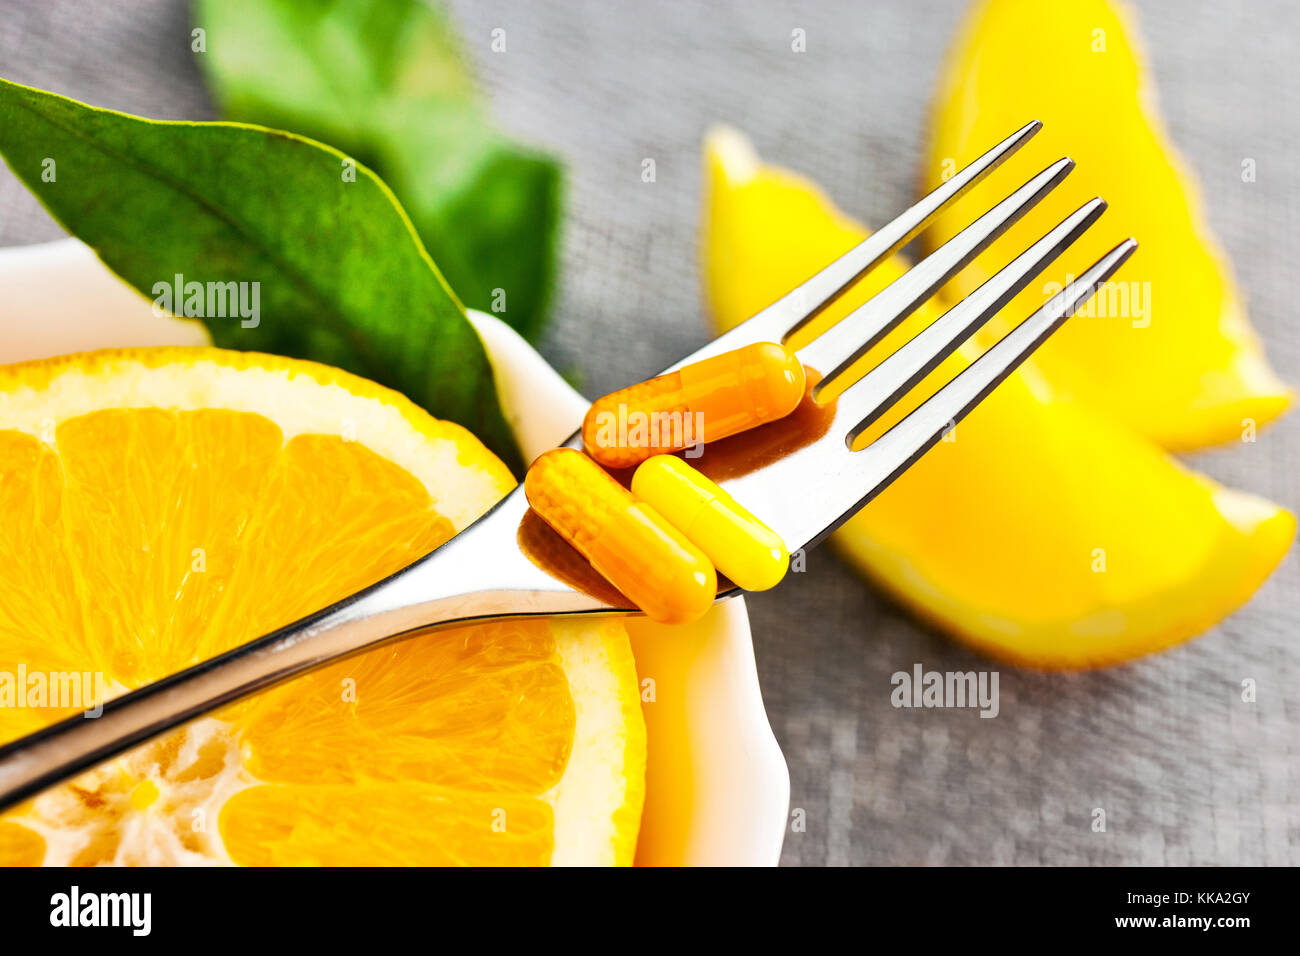 health care - fresh orange fruit and vitamin C - nutition tablets on the fork Stock Photo